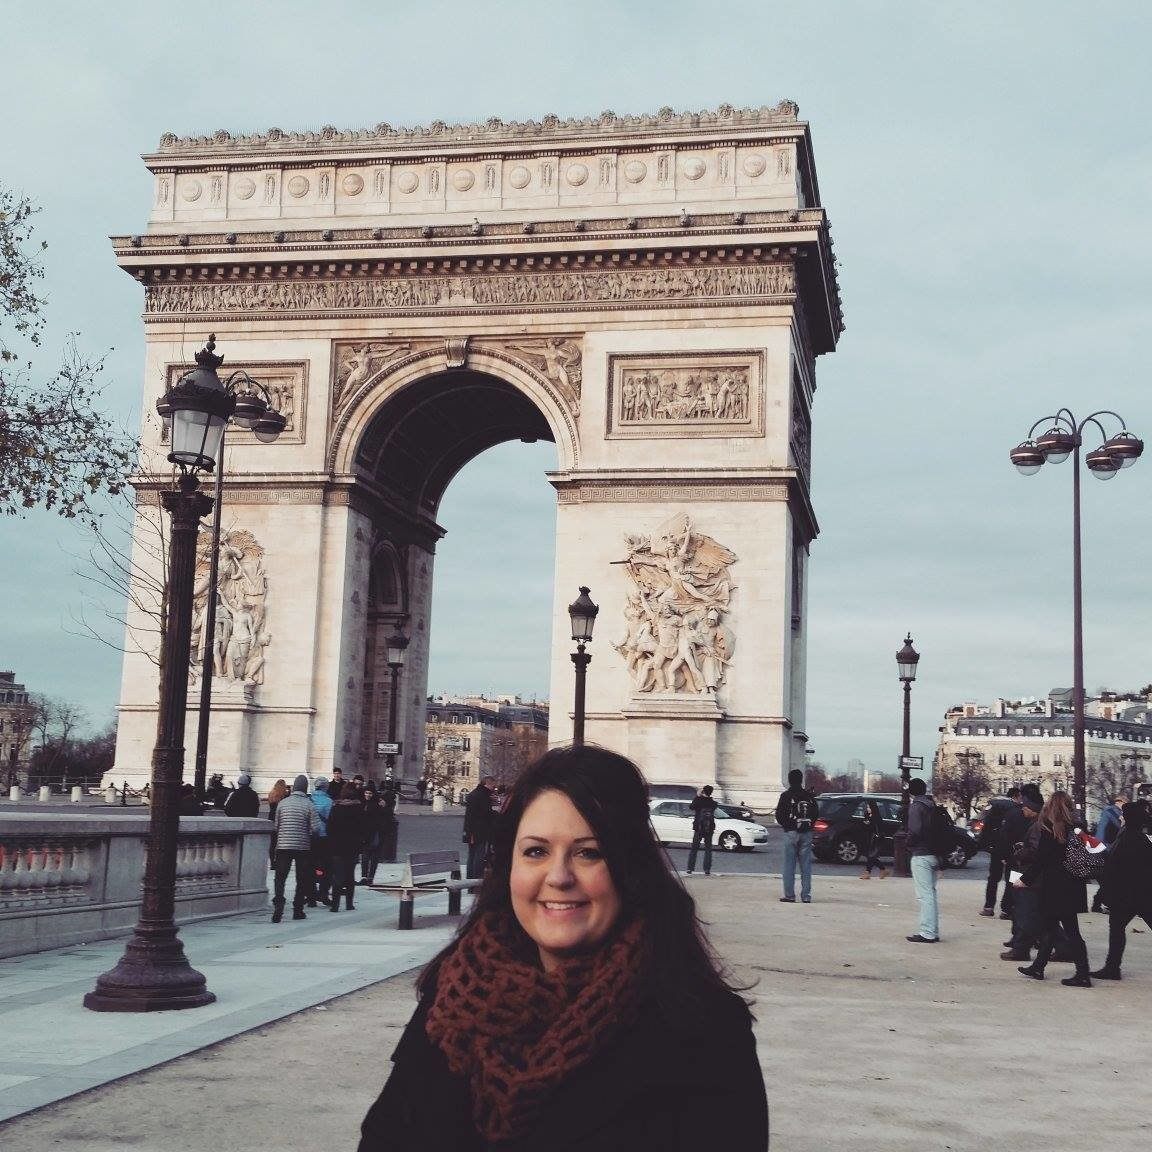 Jill Blue Photography stands near the arc de triumph in paris, france